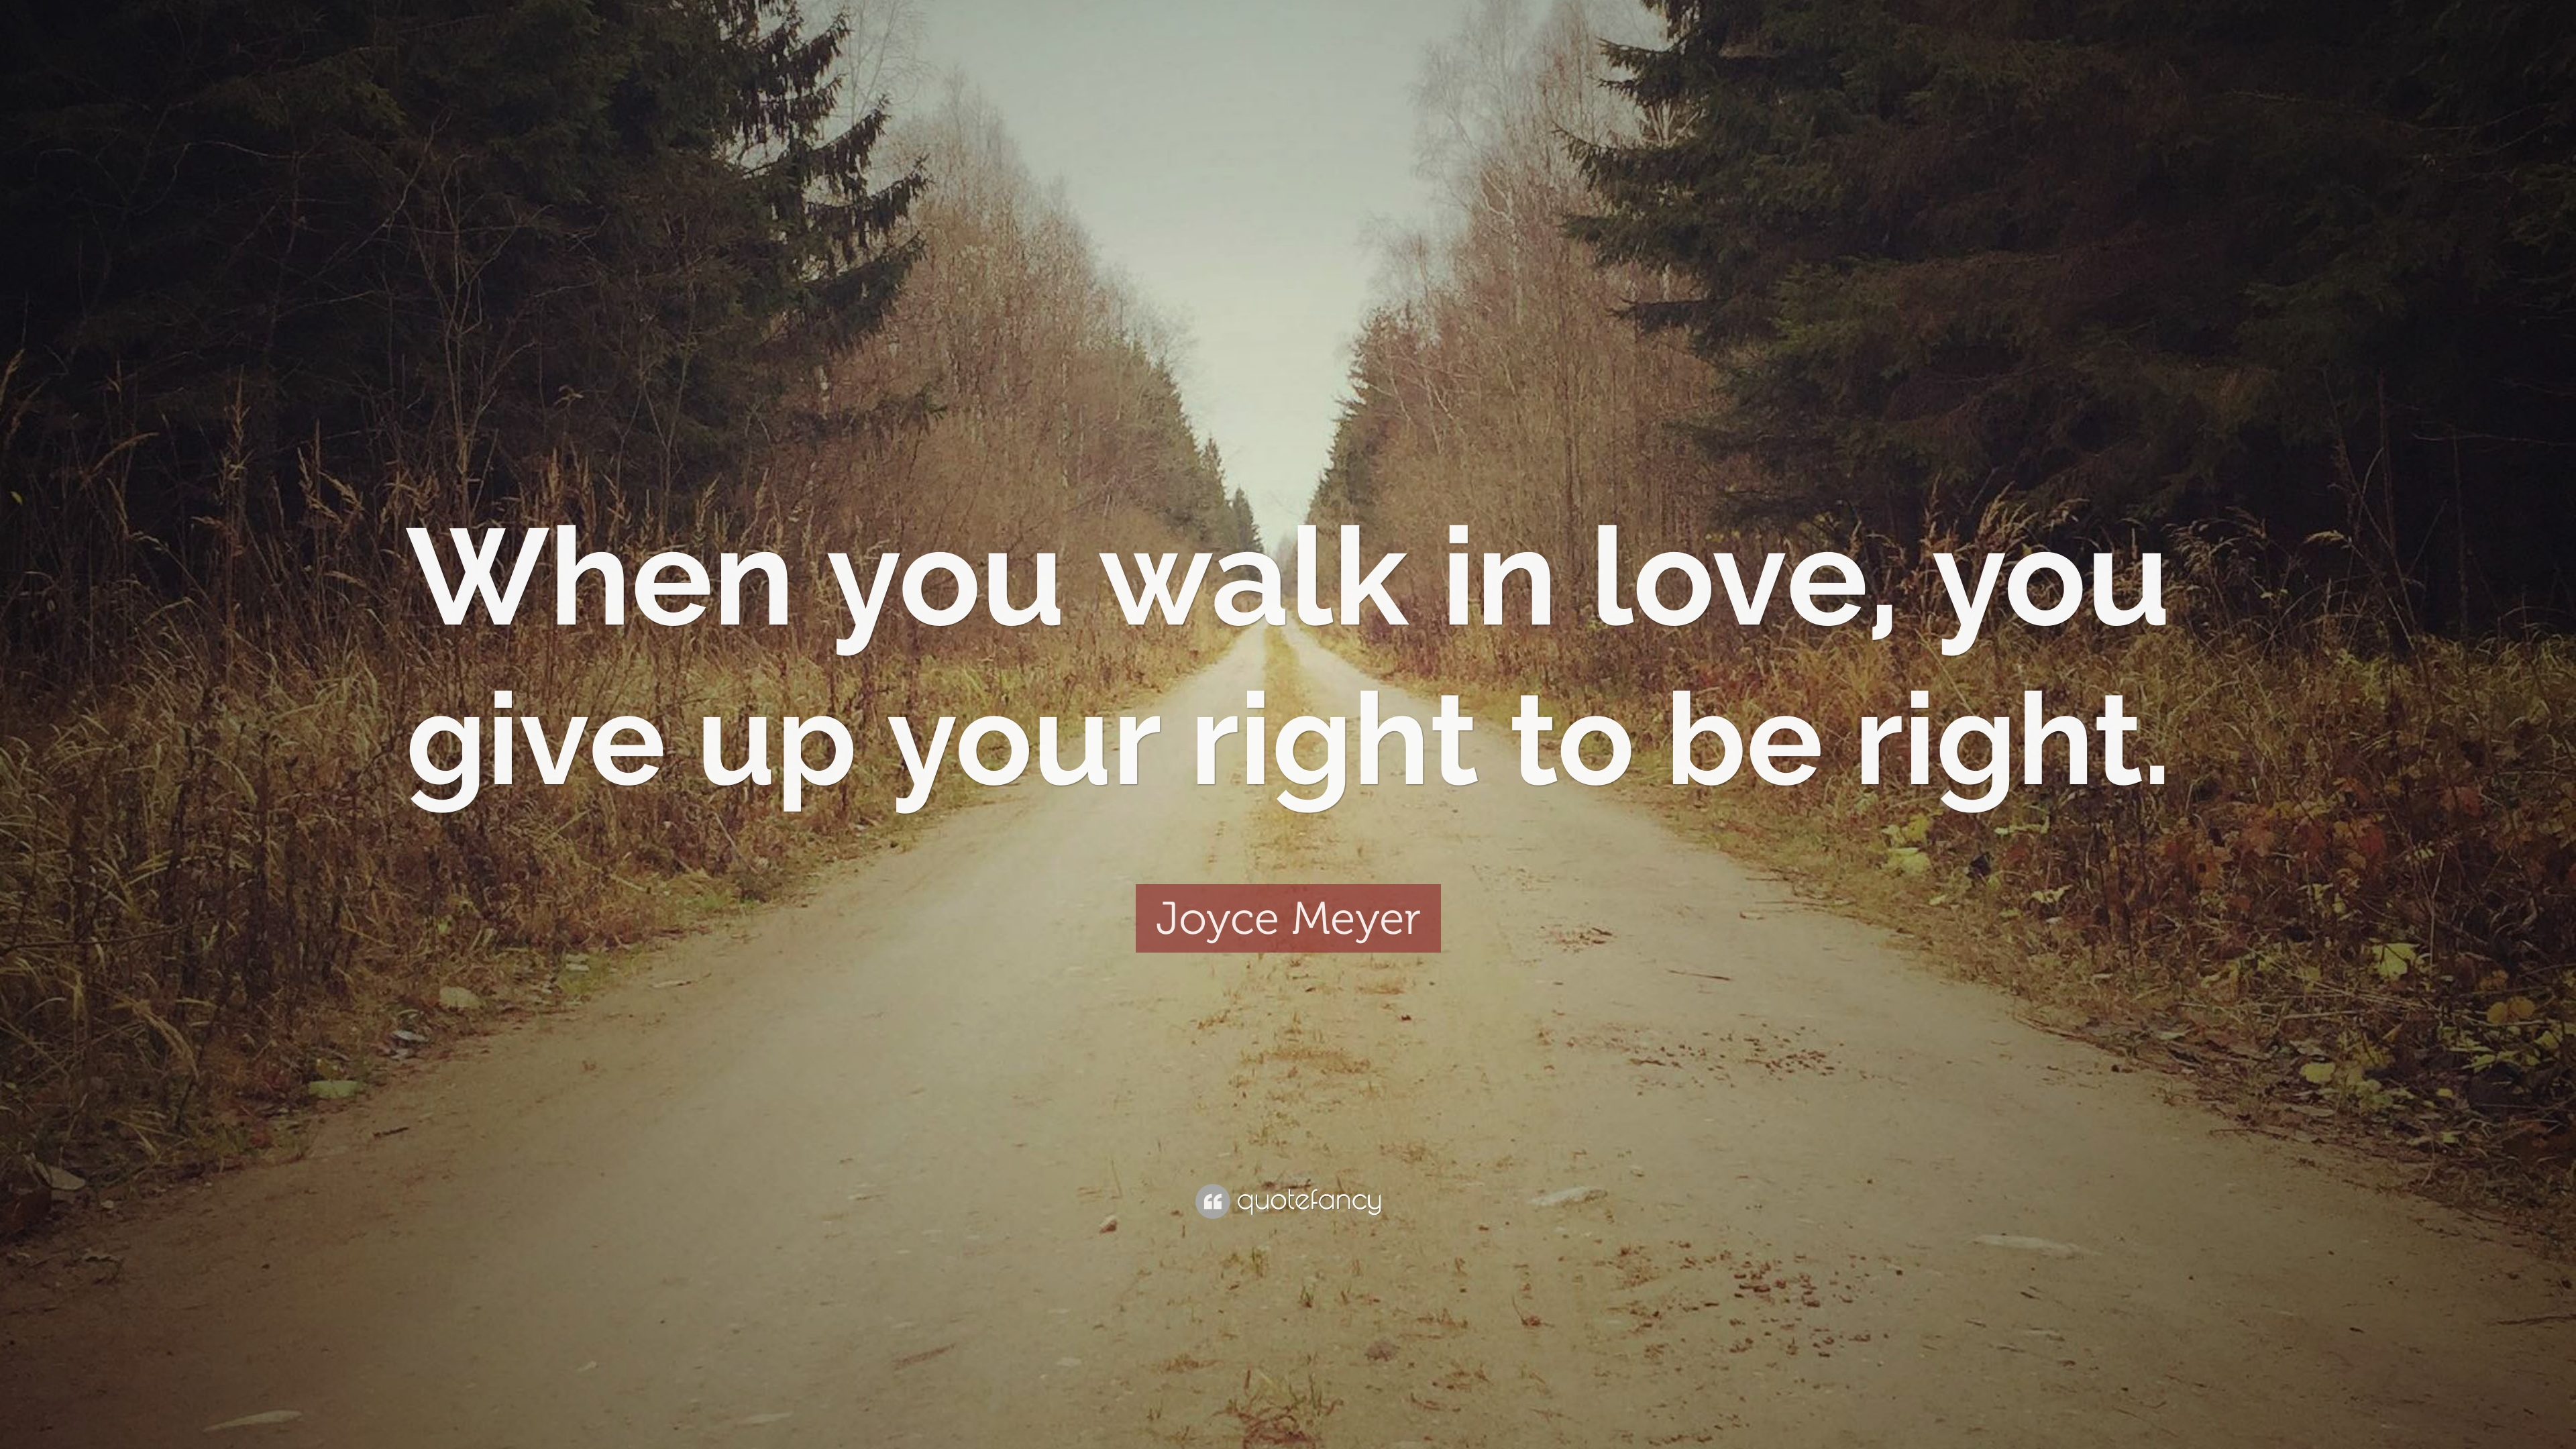 Joyce Meyer Quote When You Walk In Love You Give Up Your Right To